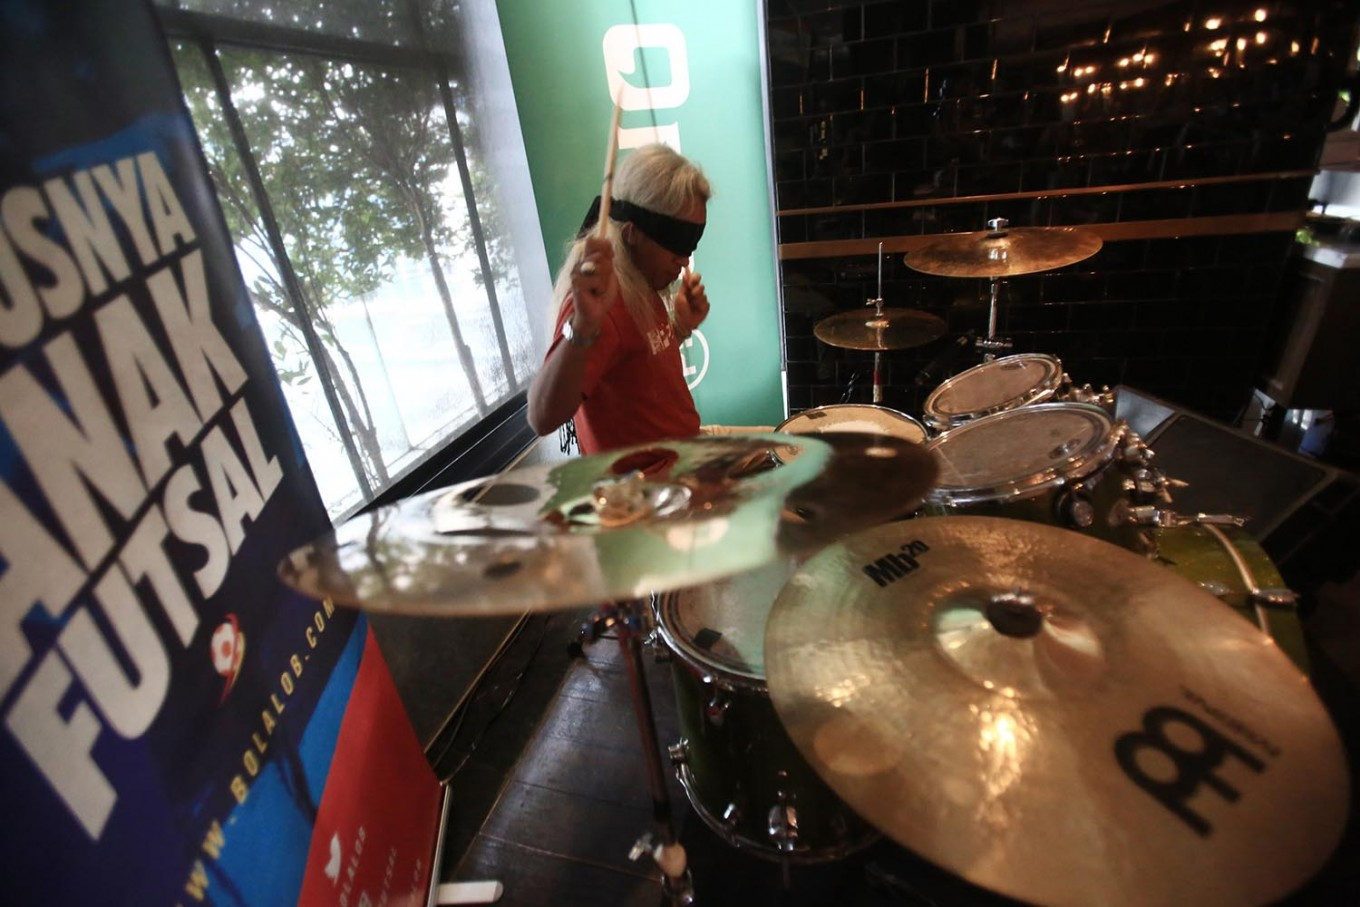 Indonesian drummer to play for 24 hours at World Cup Final